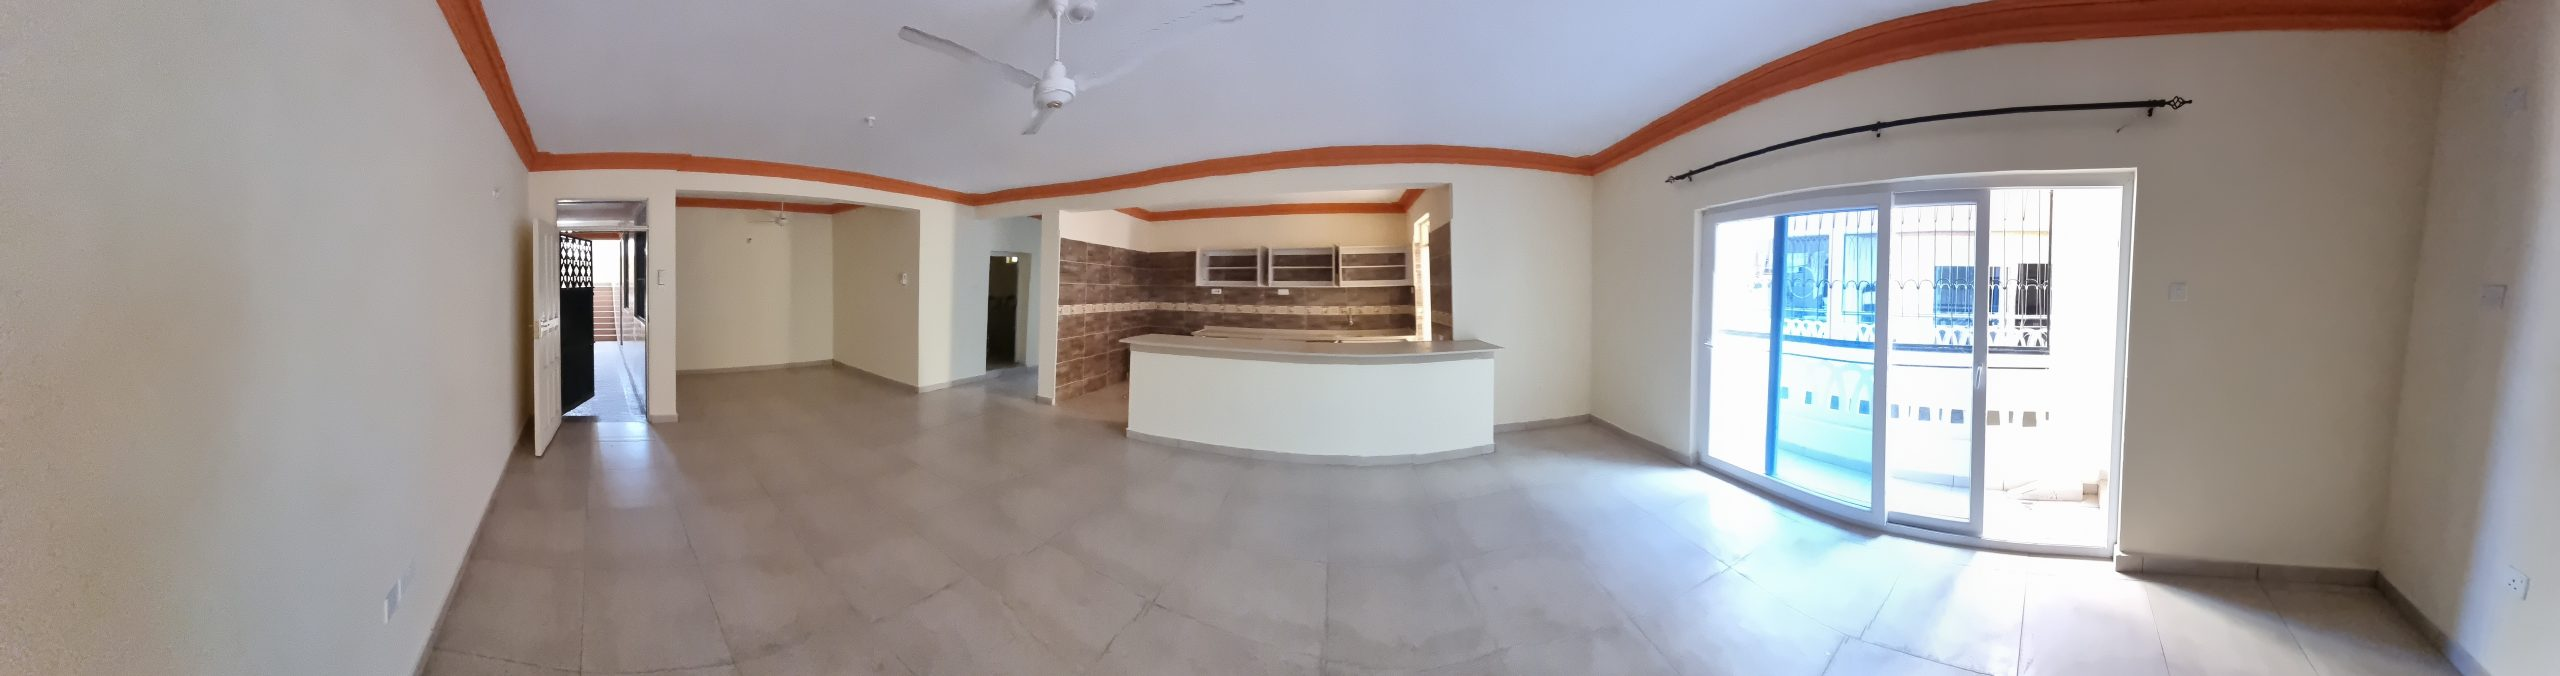 3br Mtwapa Luxury Holiday Homes apartments for Rent in Mtwapa.